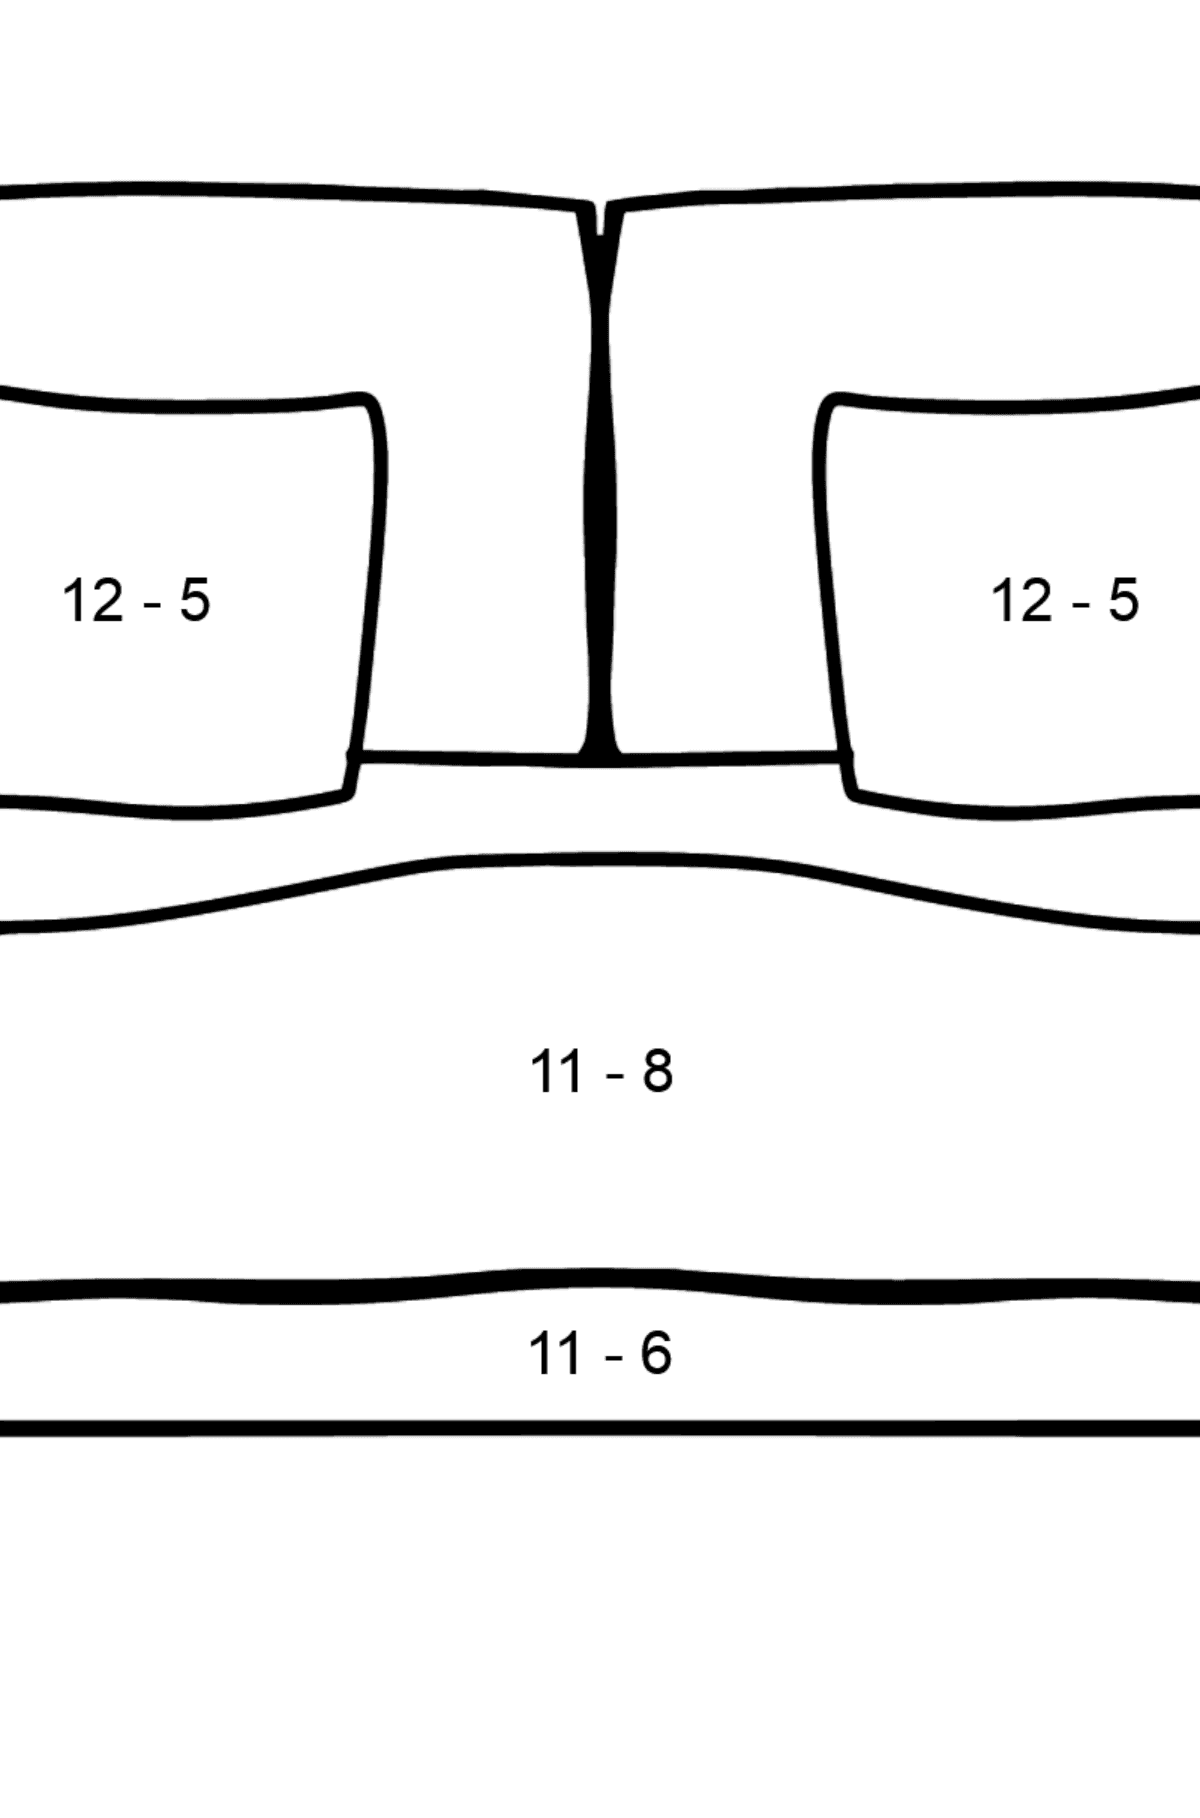 Sofa coloring page - Math Coloring - Subtraction for Kids